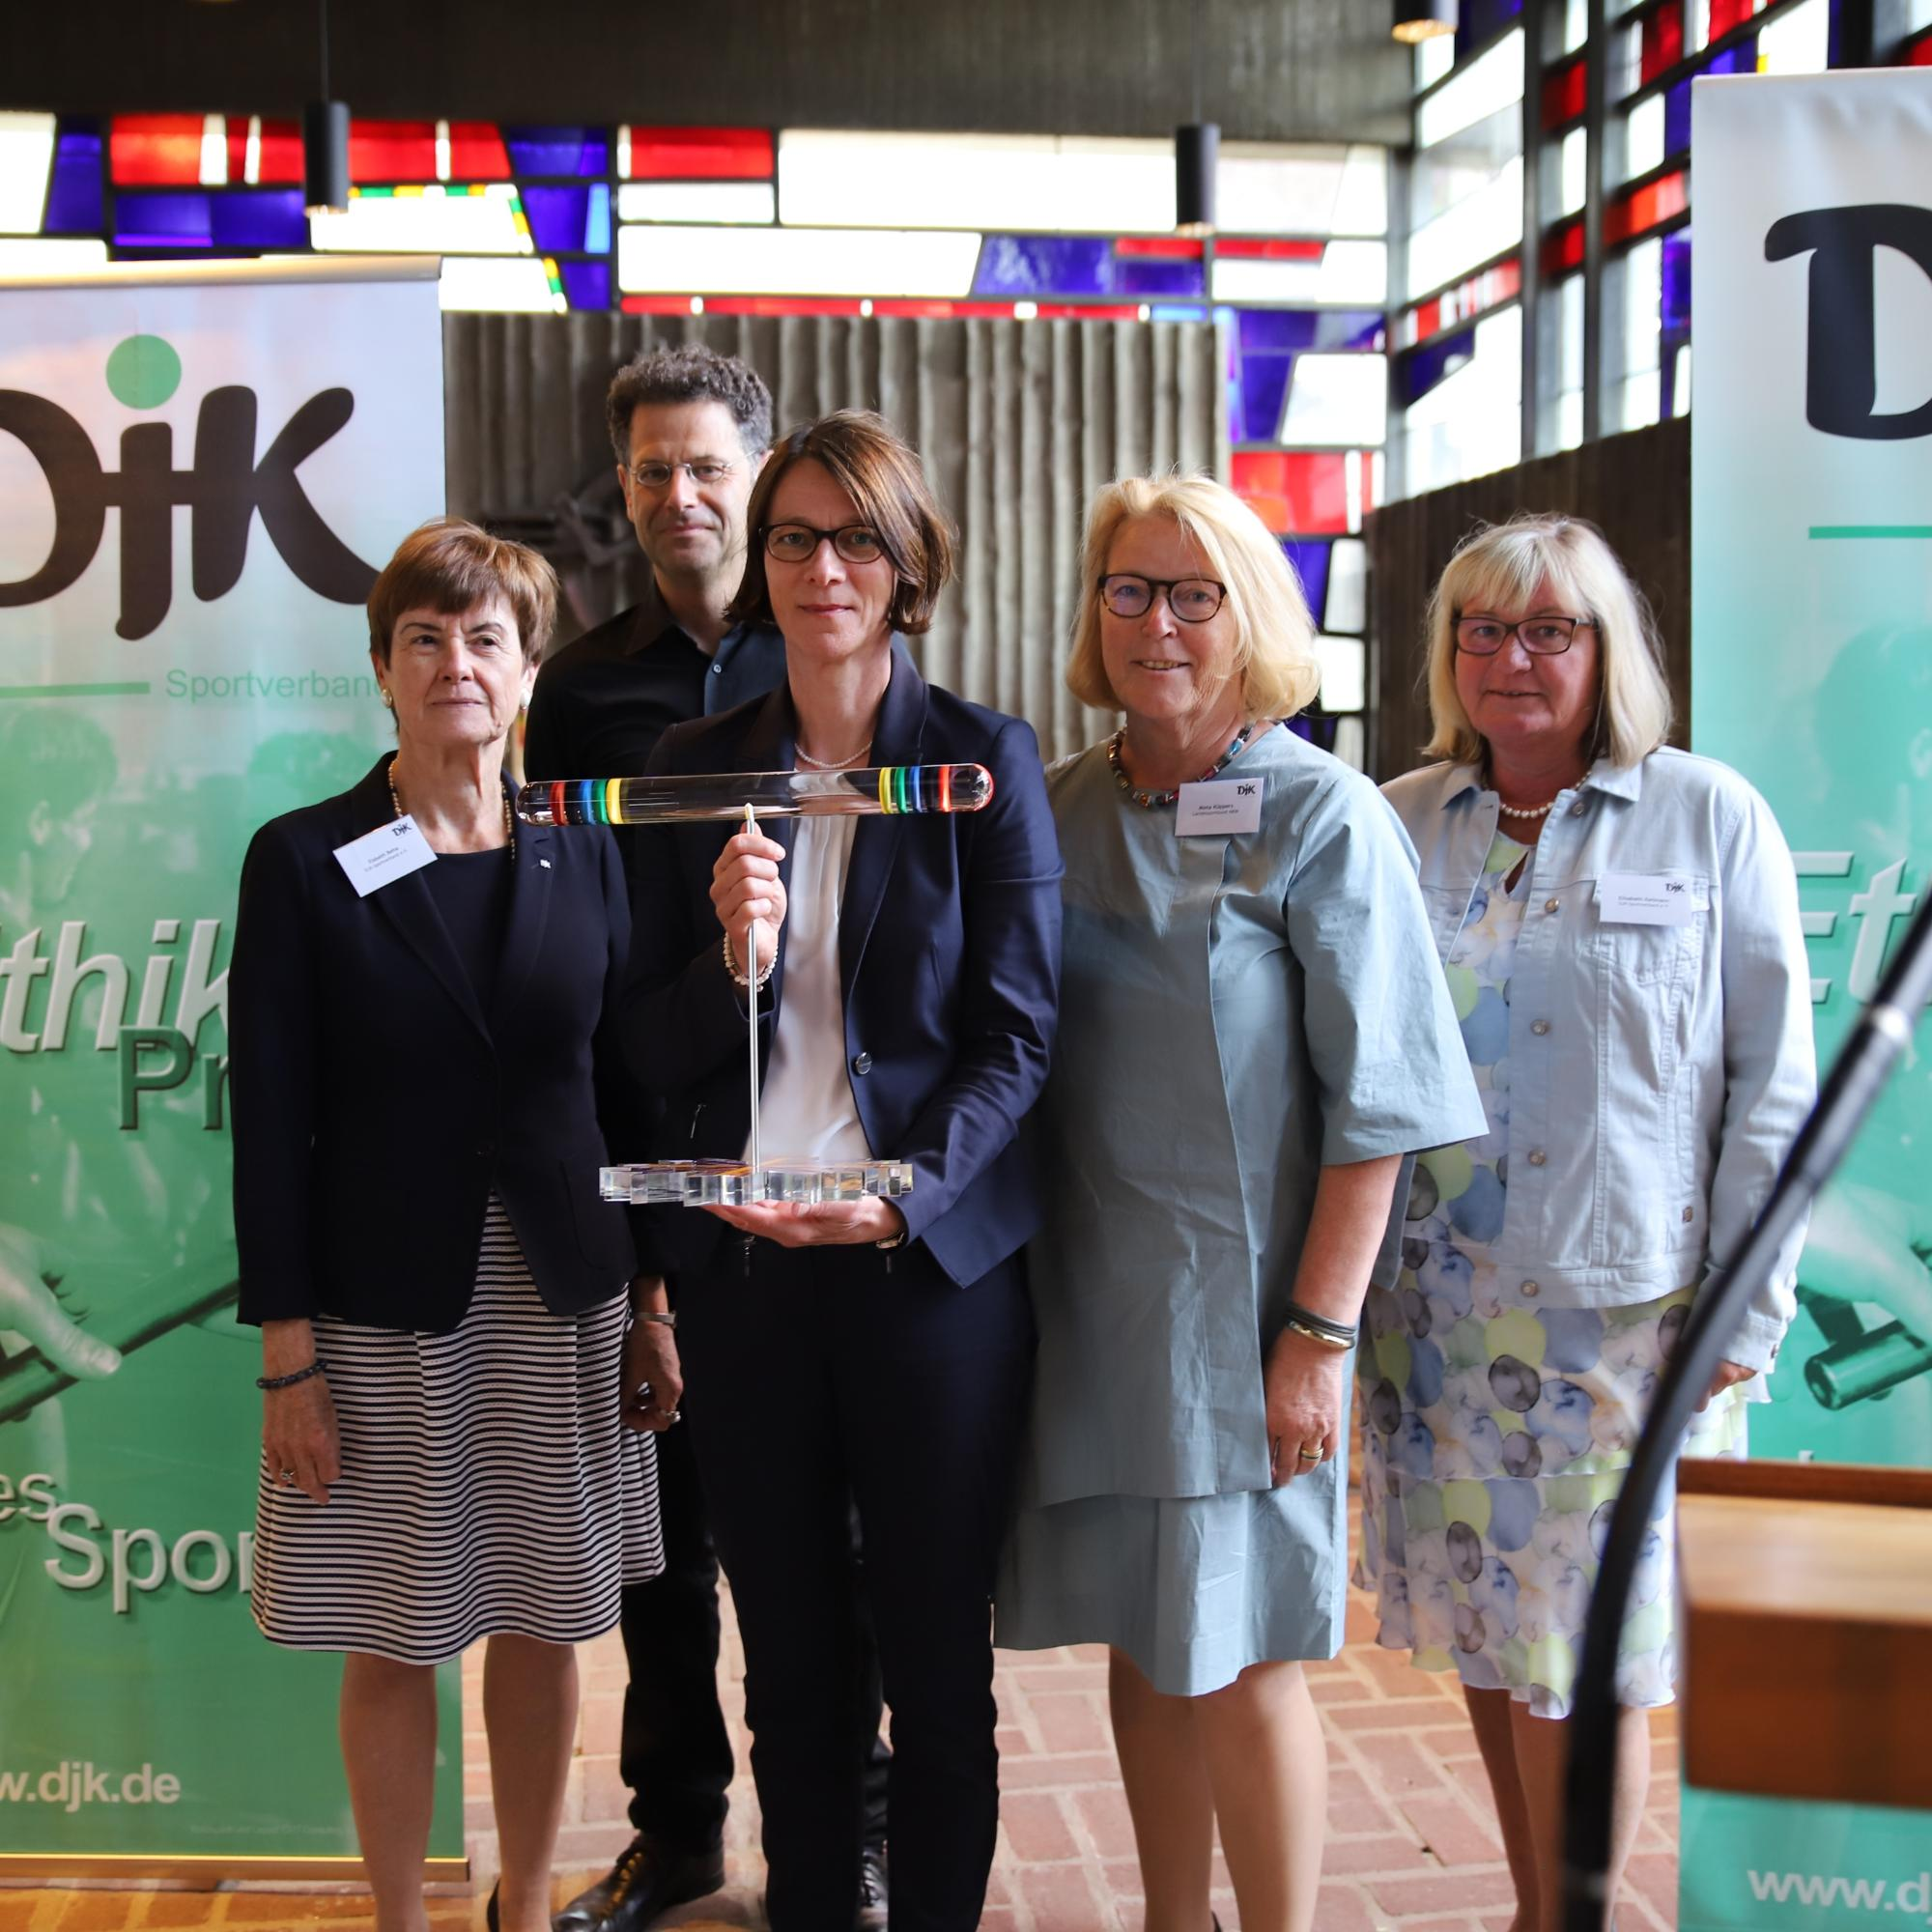 Dr. Bettina Rulofs hat den DJK-Ethik-Preis des Sports (c) DJK-Sportverband